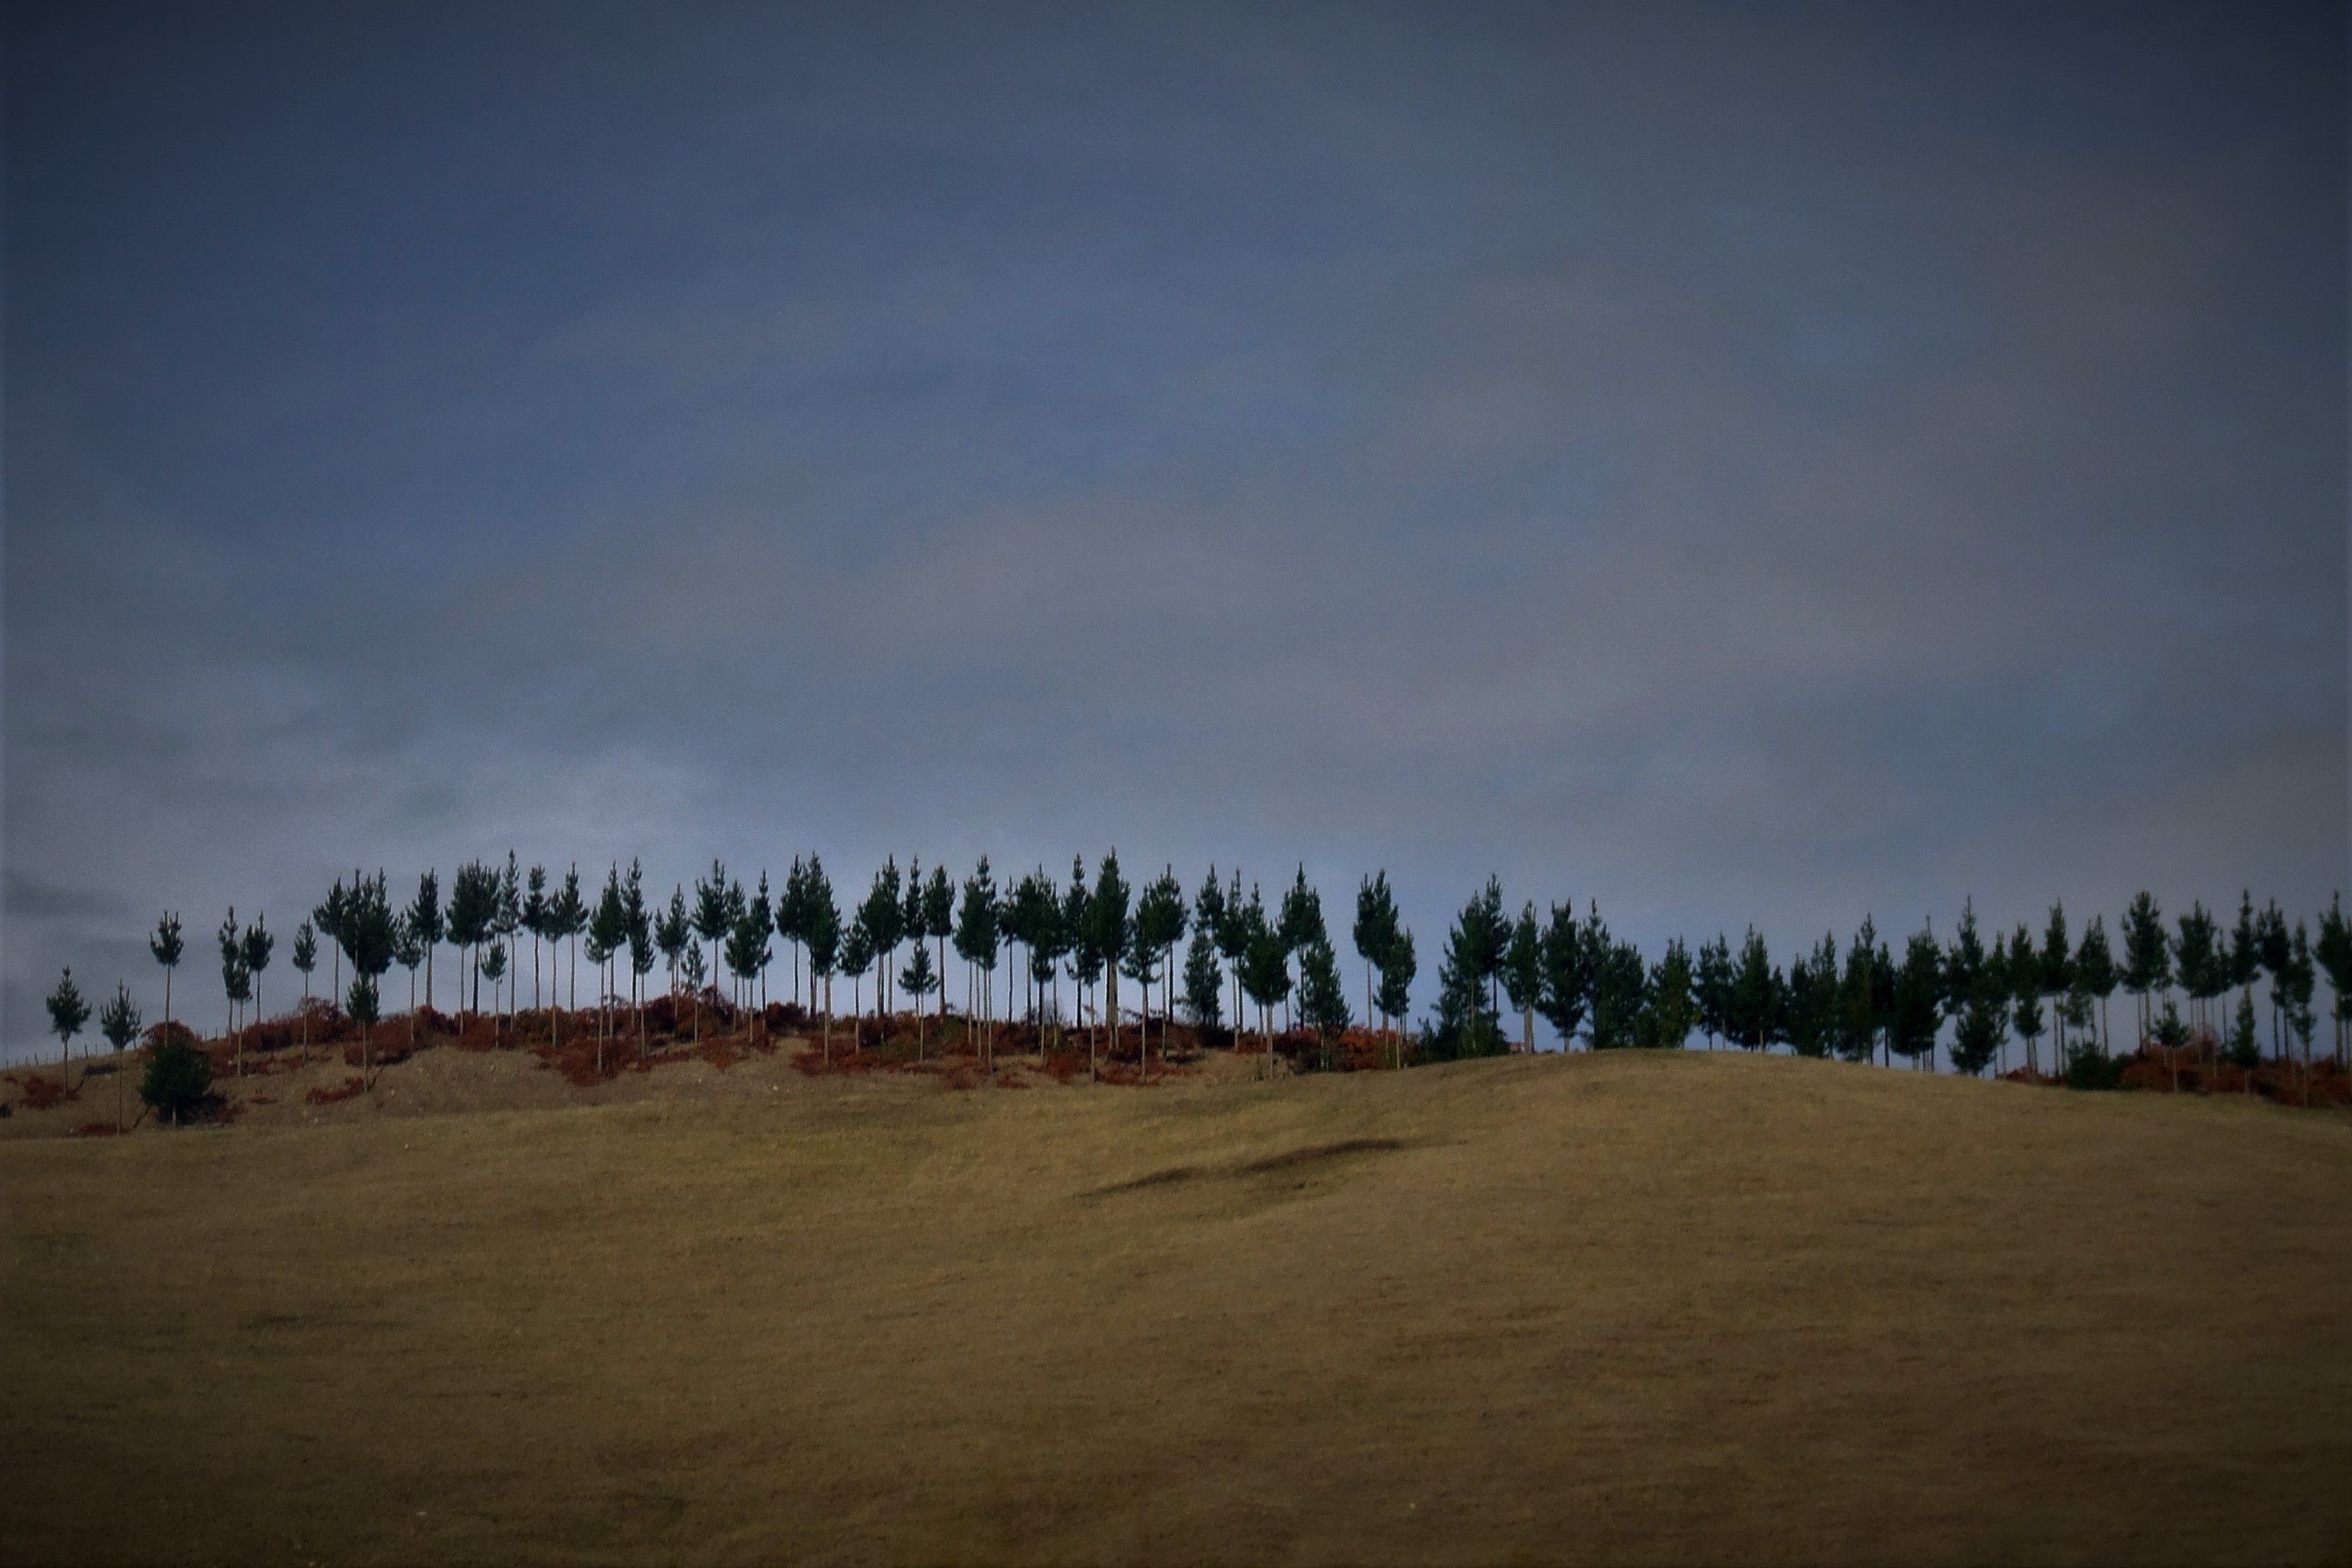 Line of young pine trees standing on ridge of a hill